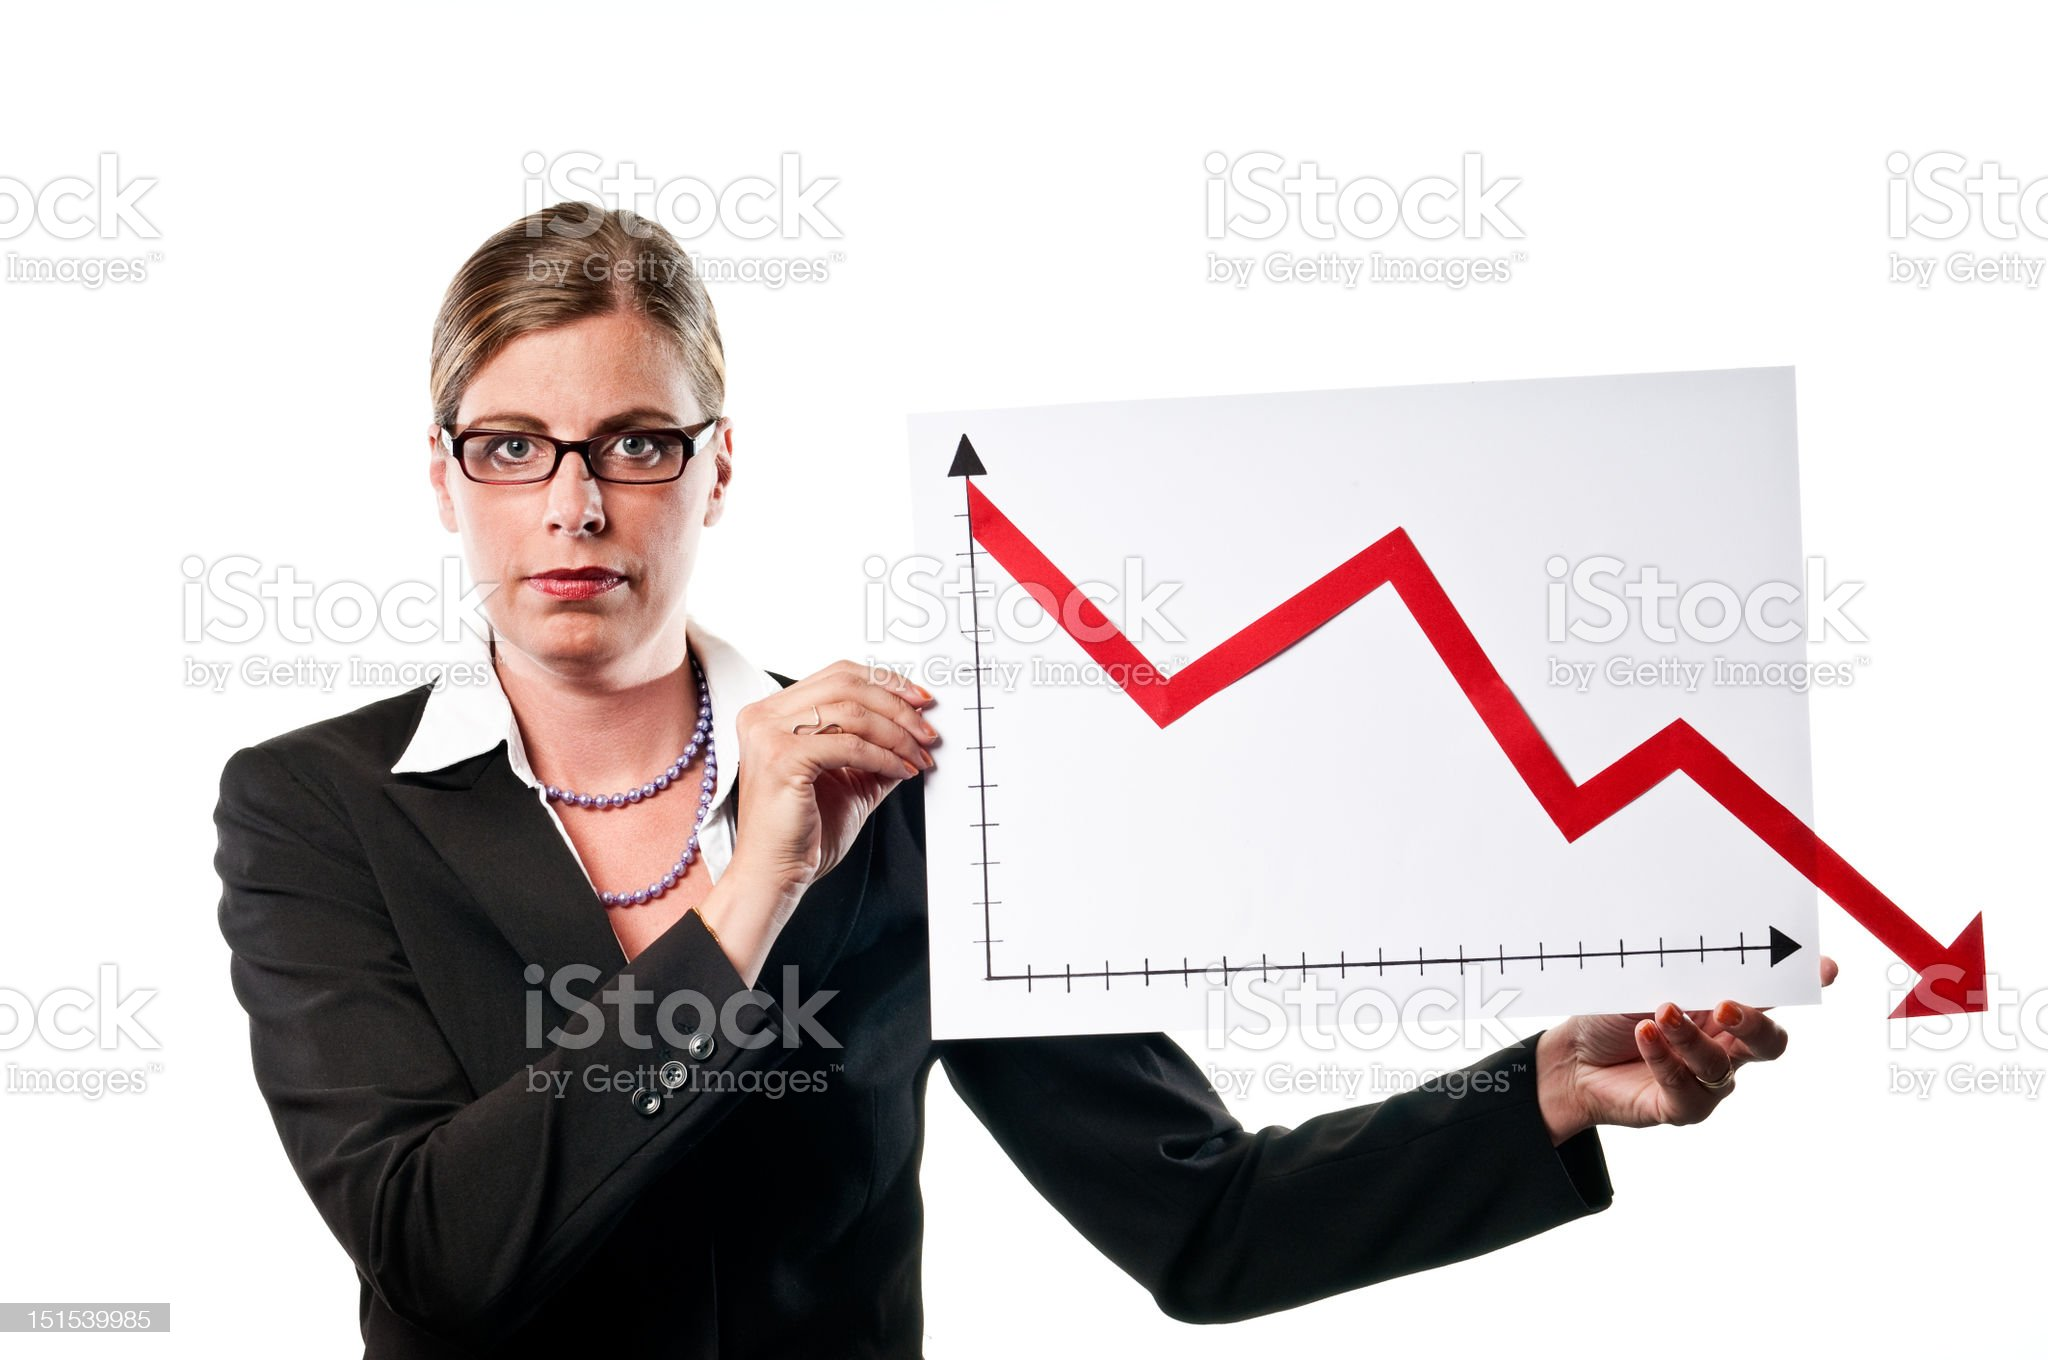 Business woman with chart royalty-free stock photo